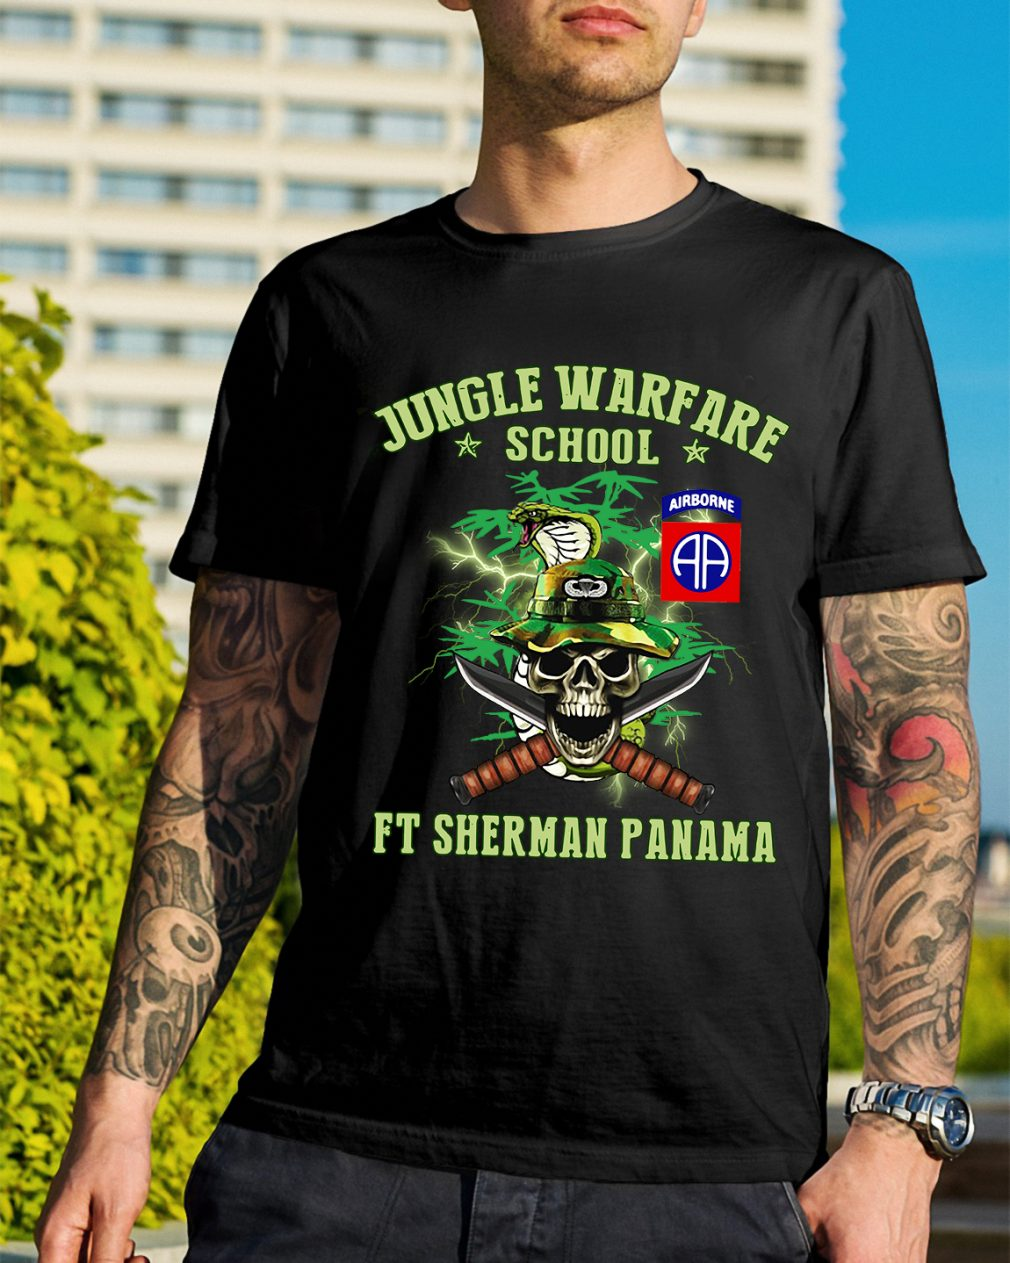 Jotc Airborne Jungle Warfare school Ft Sherman Panama shirt